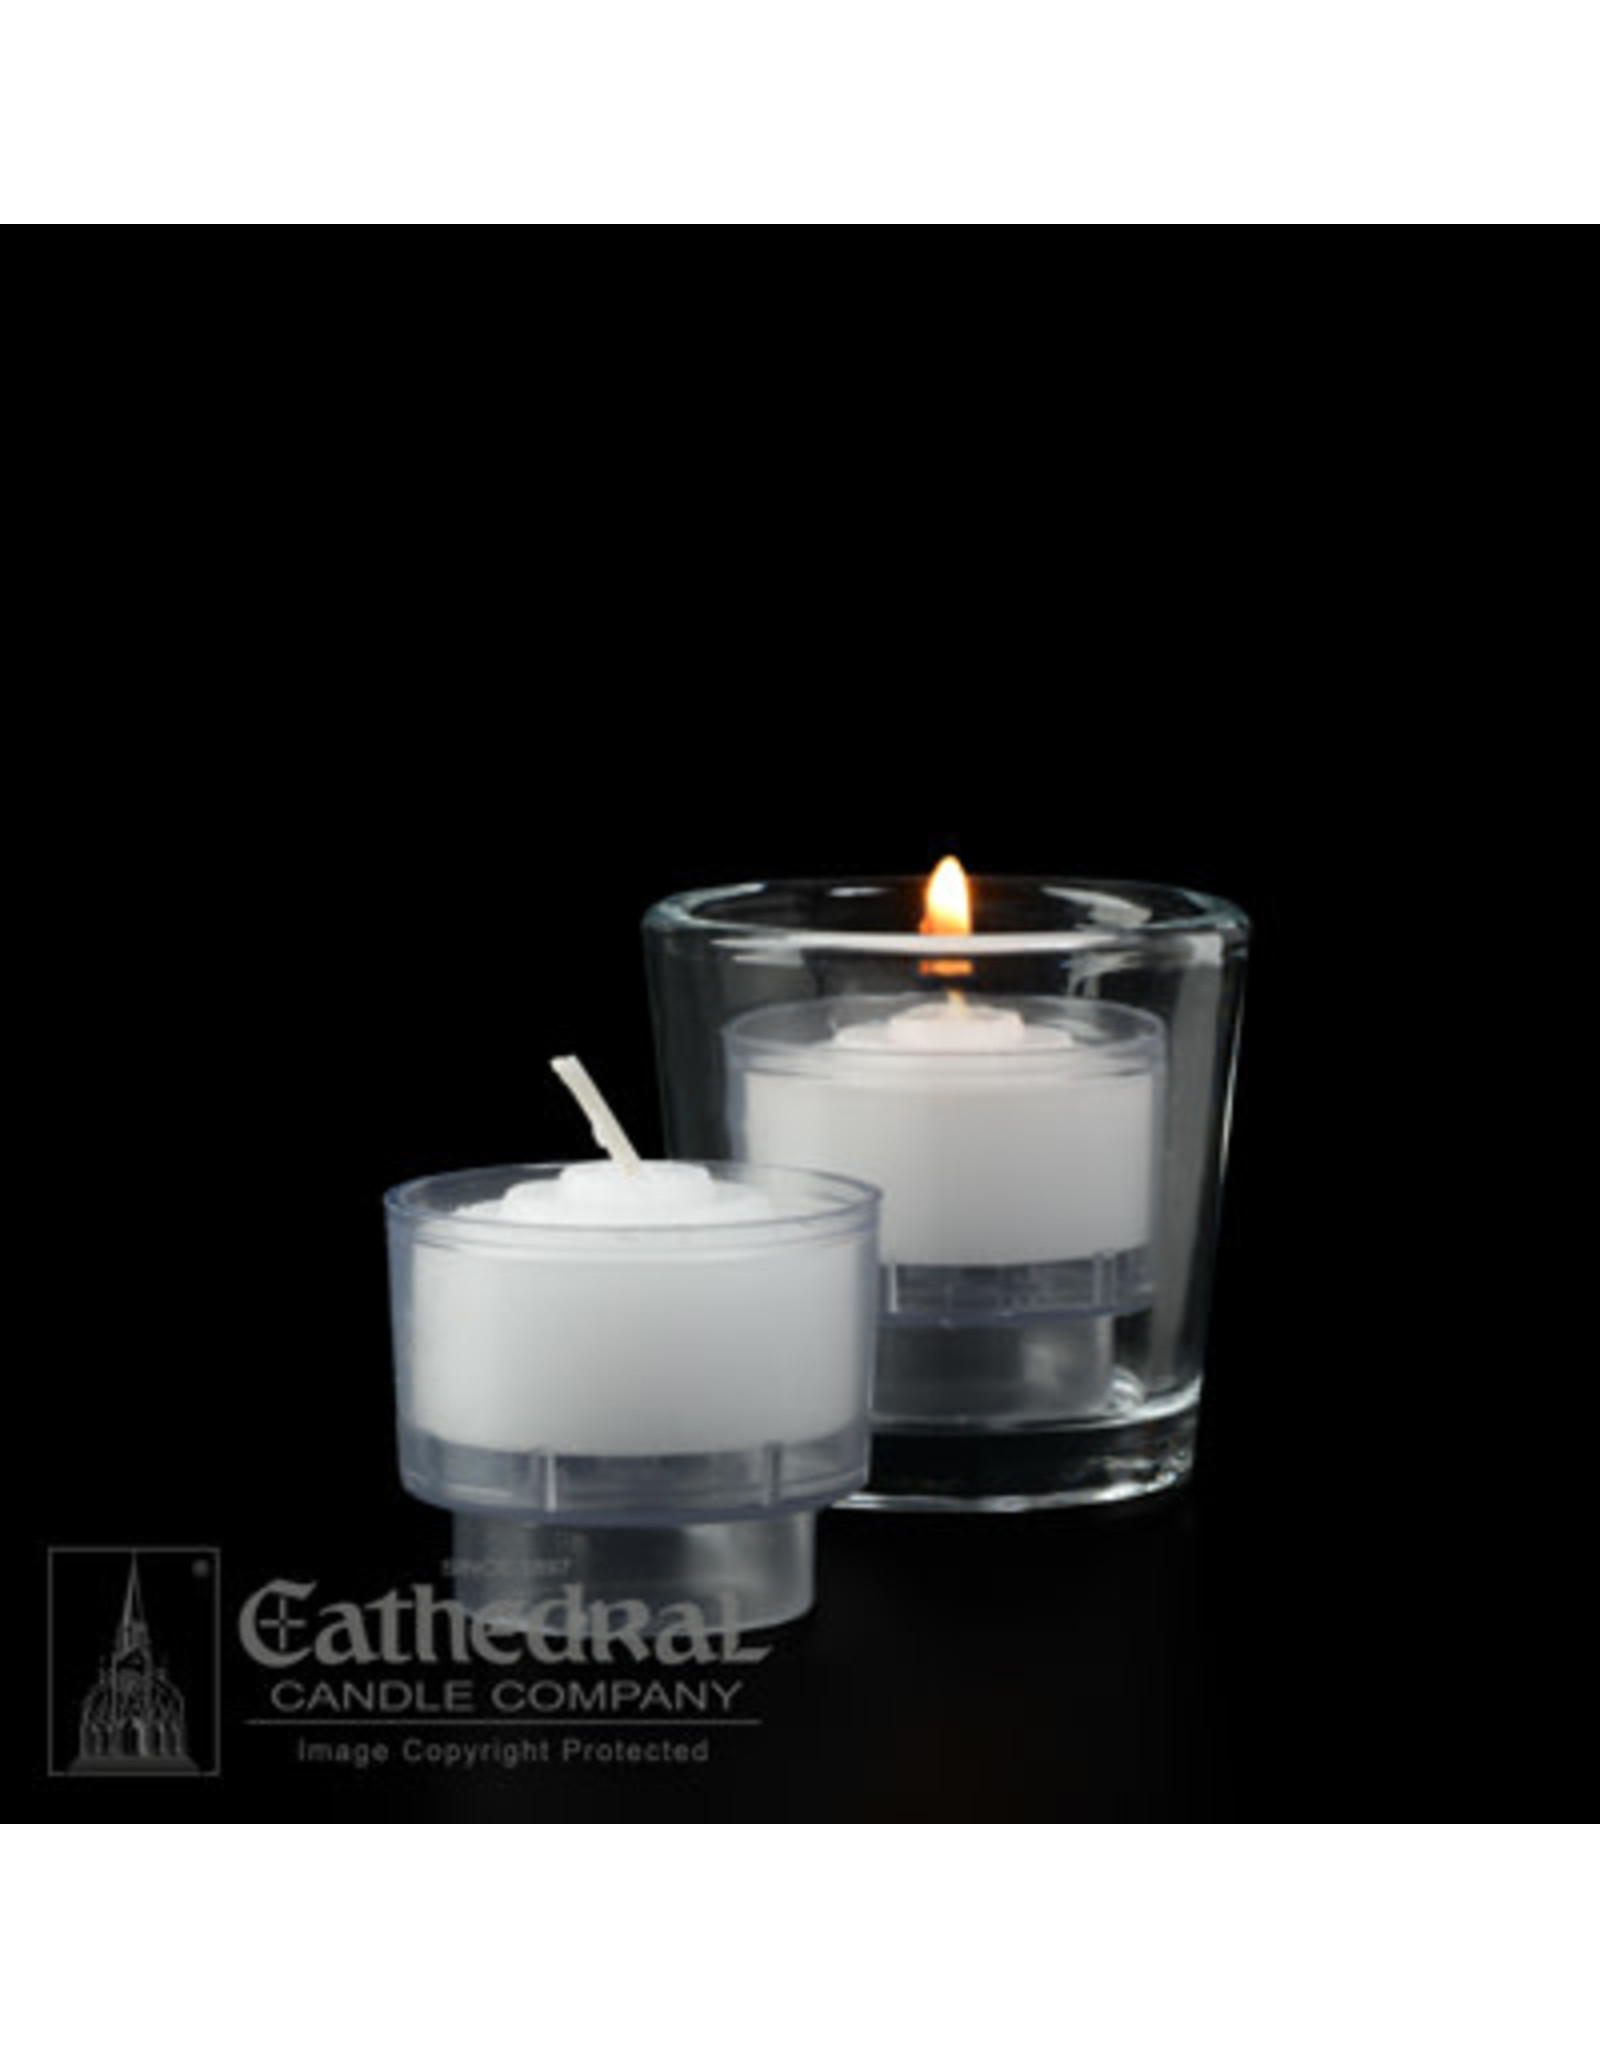 4-Hour Crystal Votive ez-Lite Candles (1 Gross)